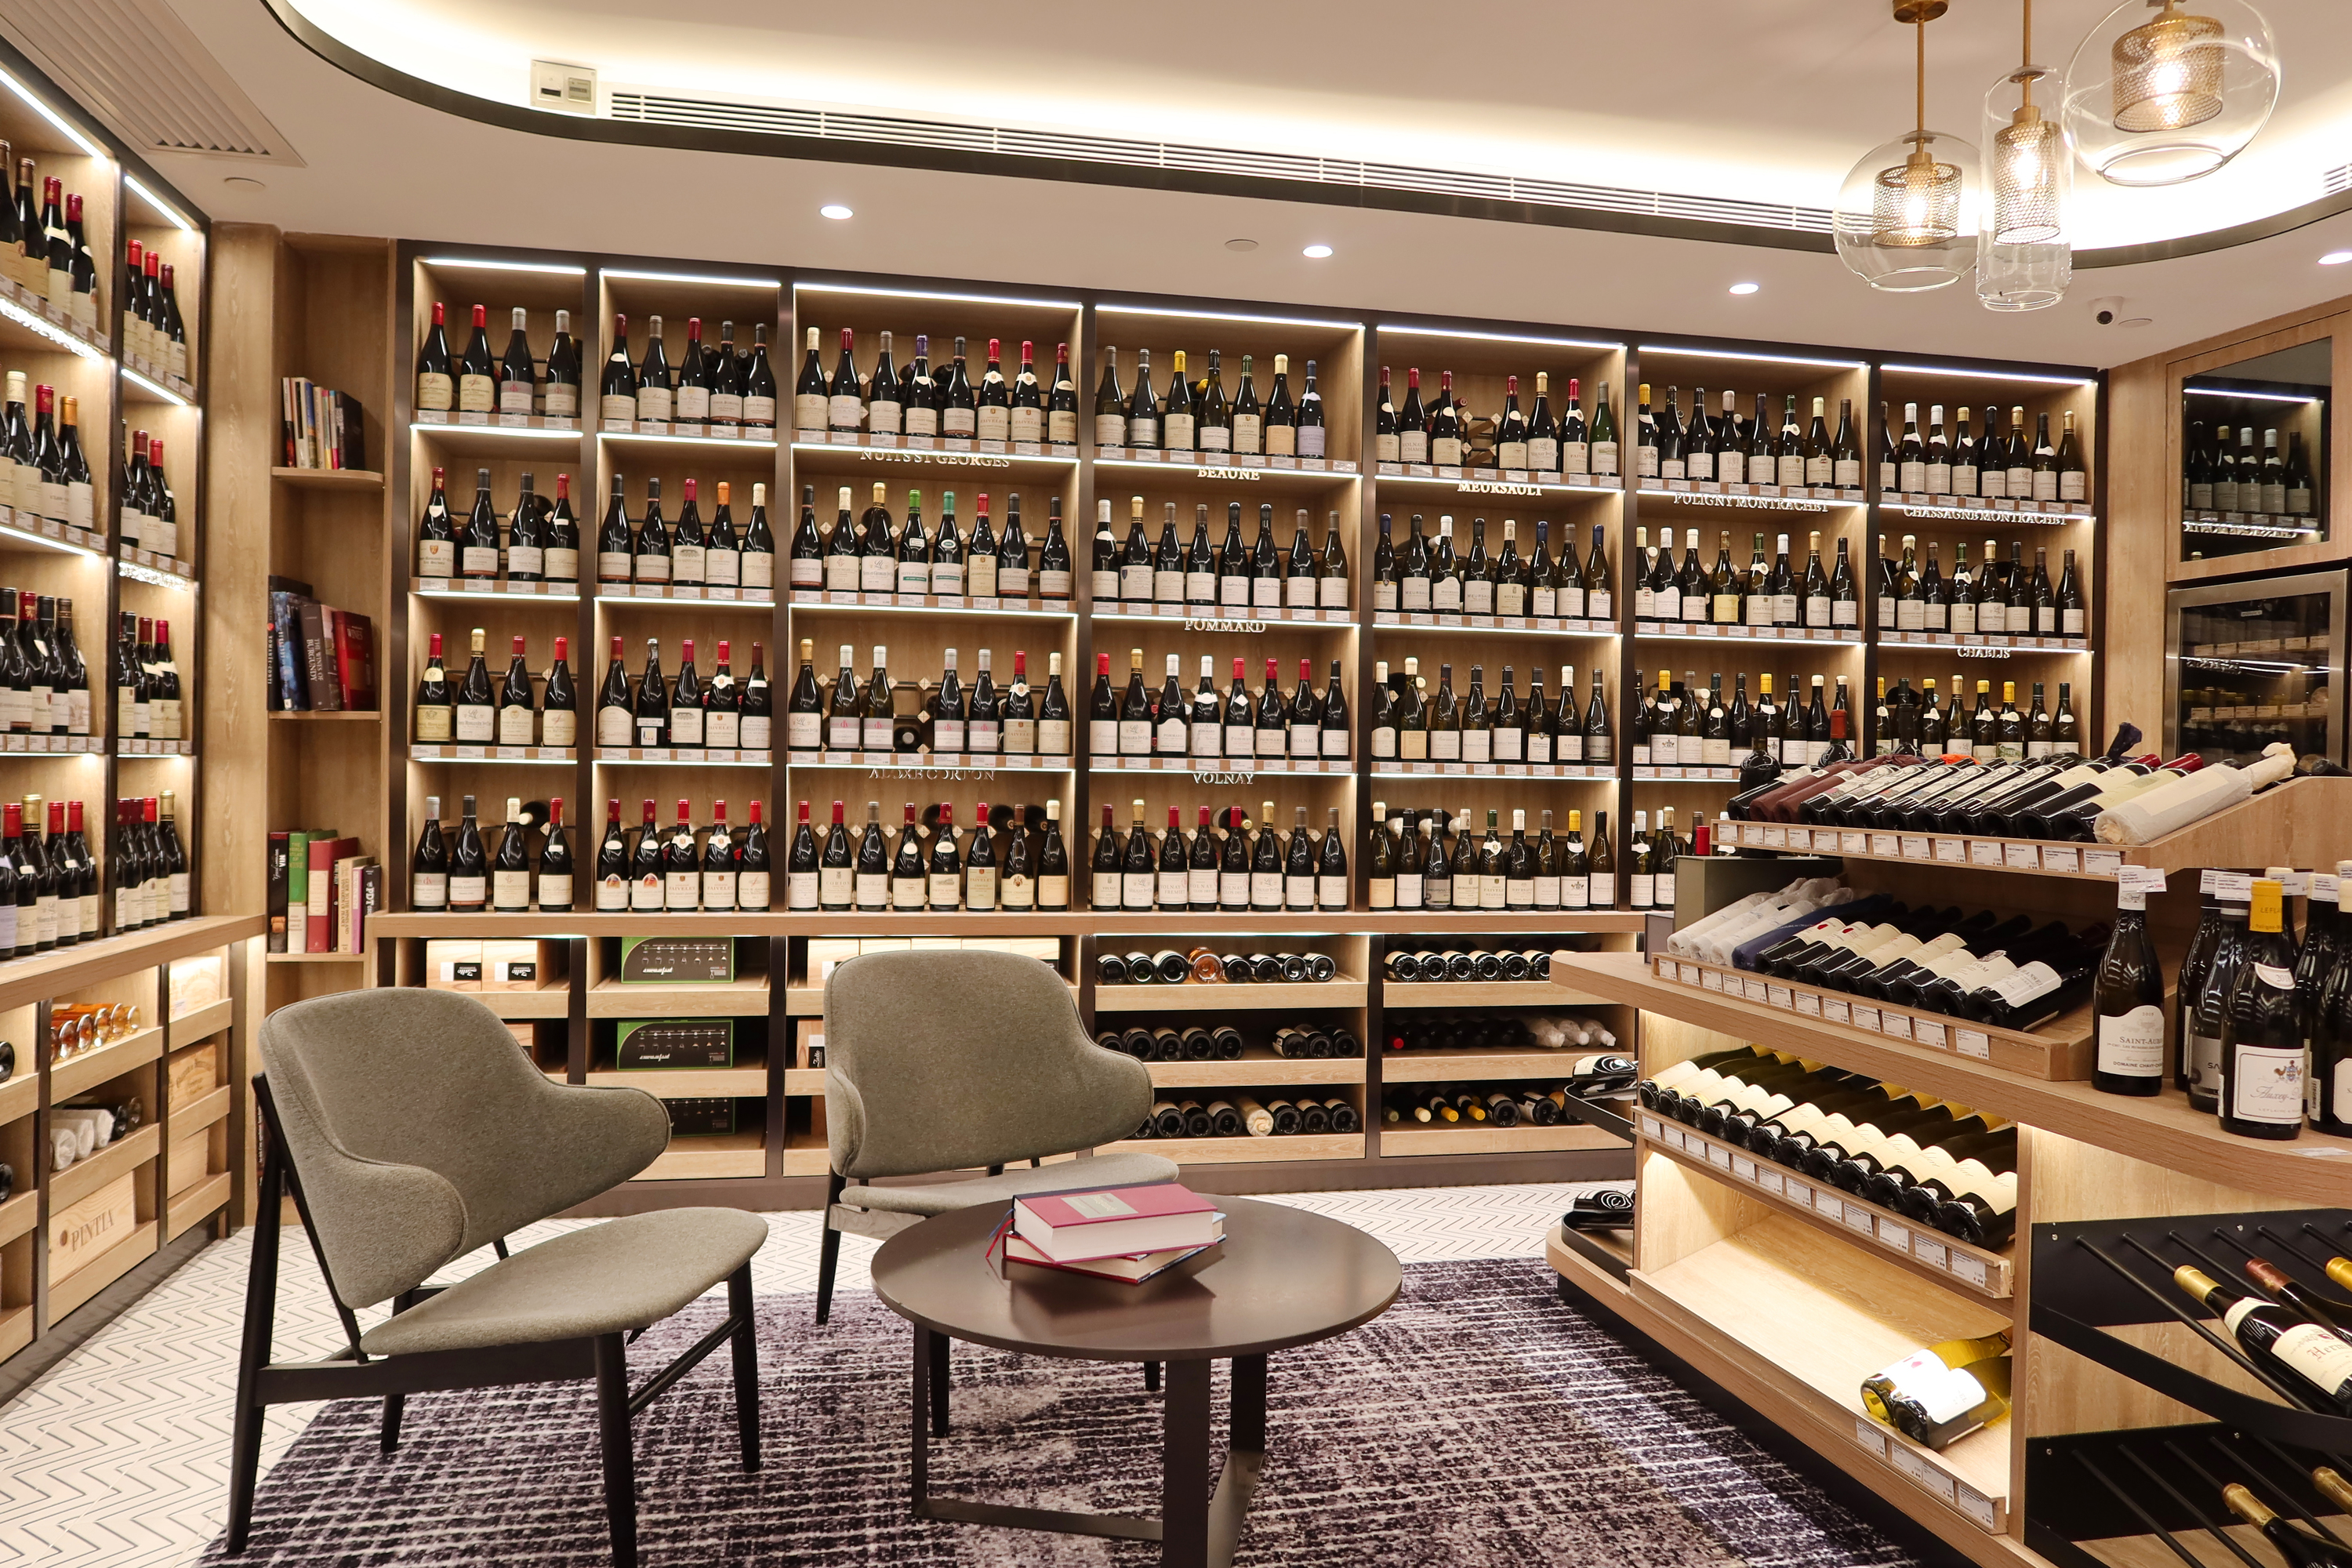 Hong Kong's largest Burgundy wine selection now available in newly opened Etc wine shop in Central